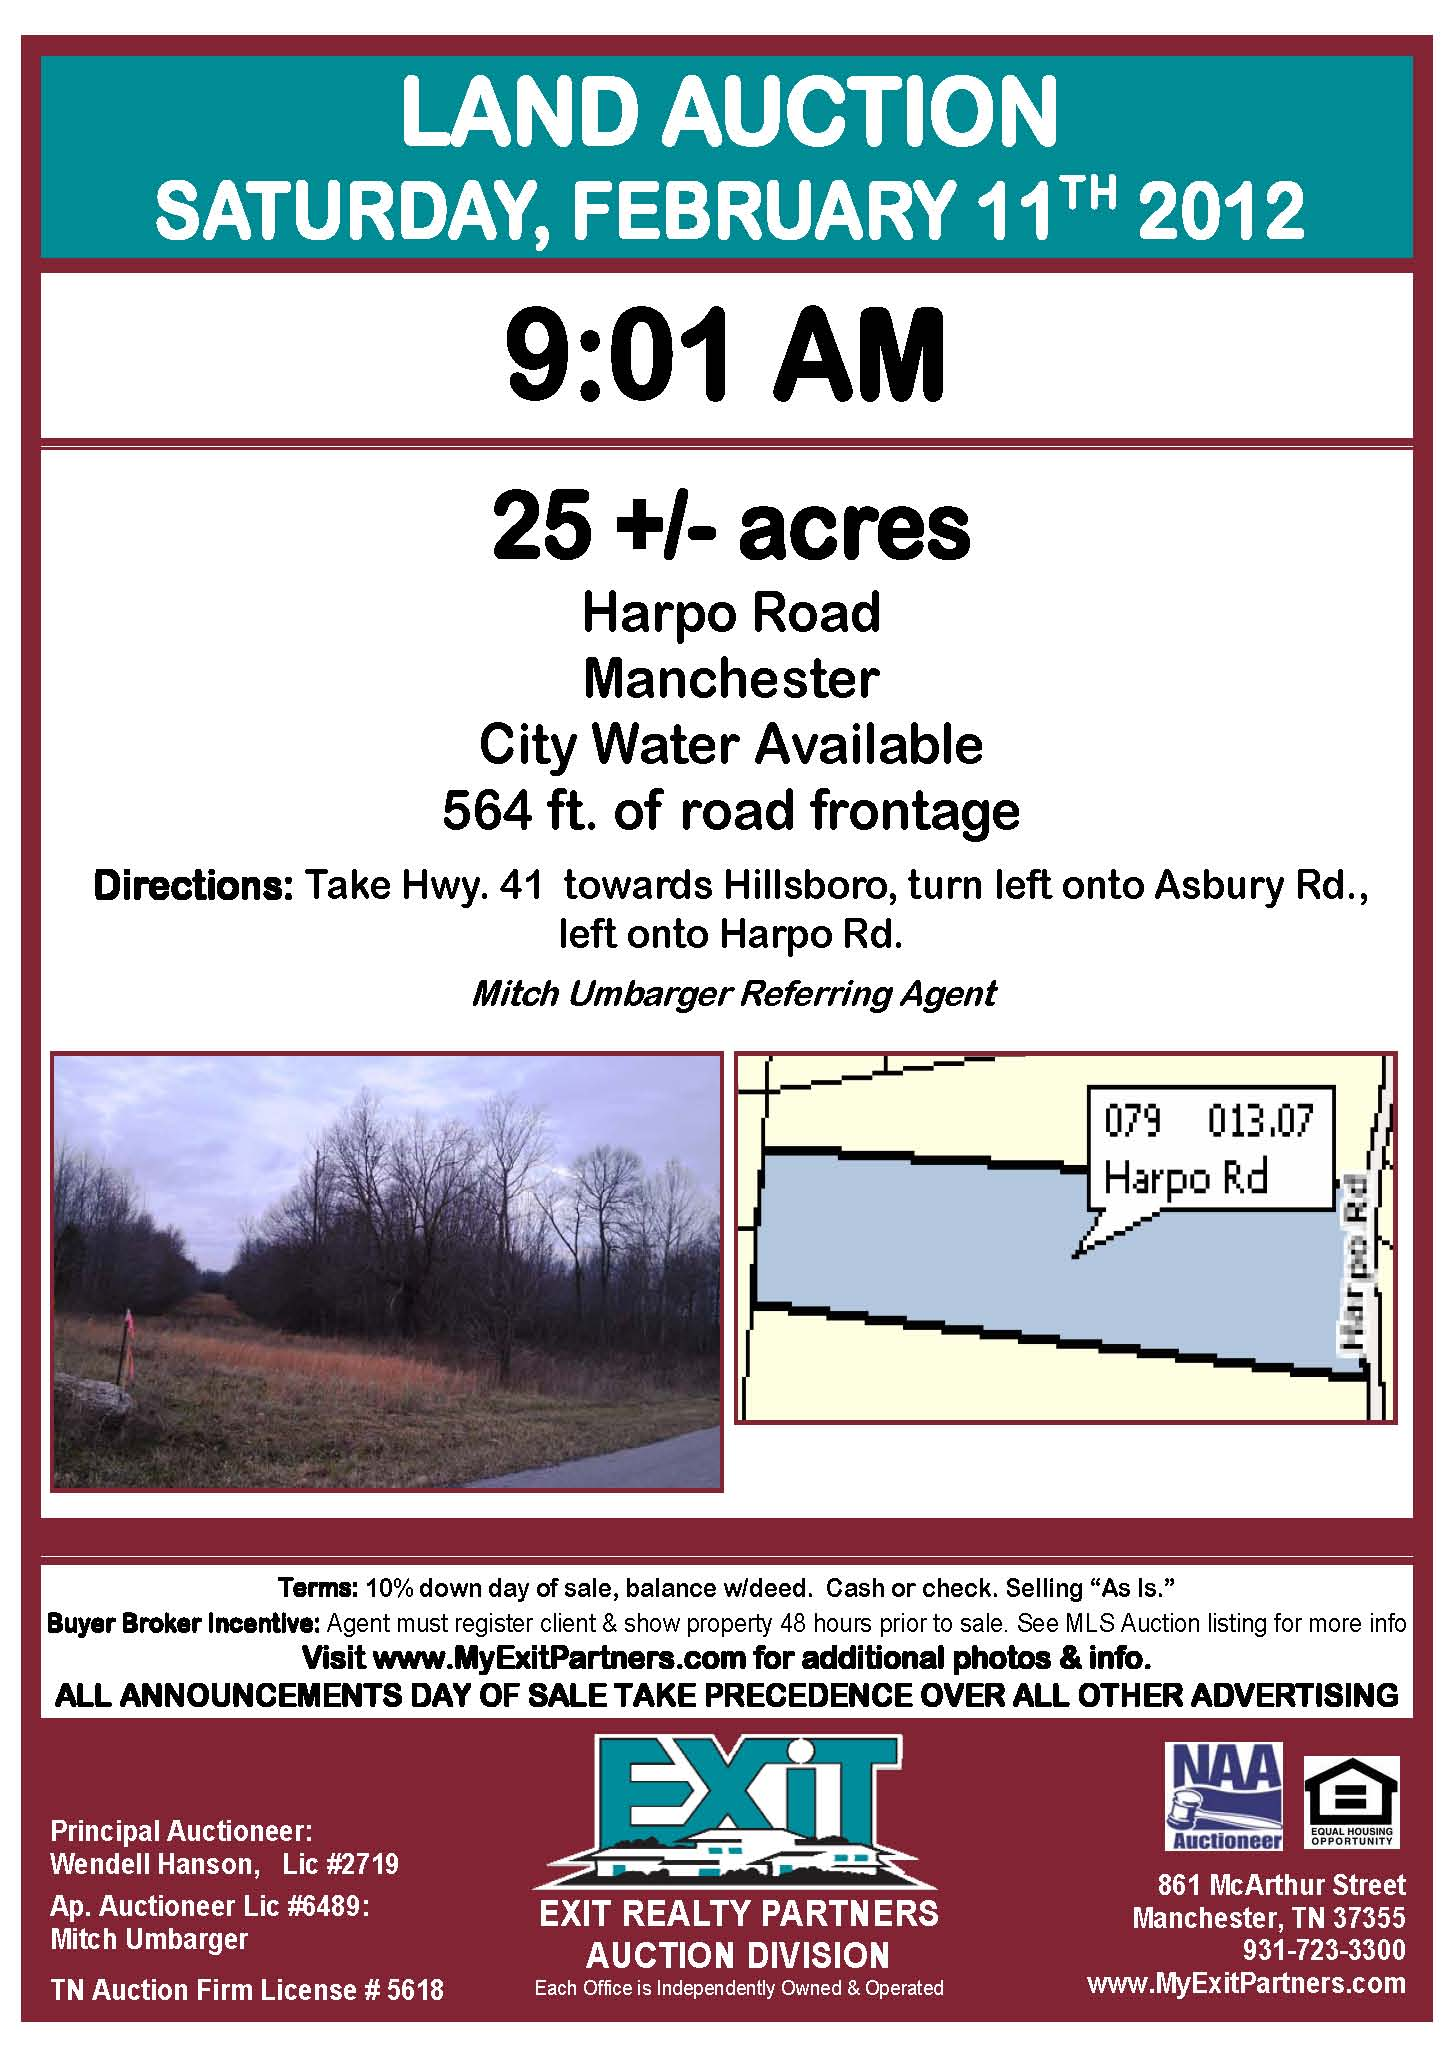 25+/- ACRES LAND AUCTION! 9:01 Saturday Feb 11